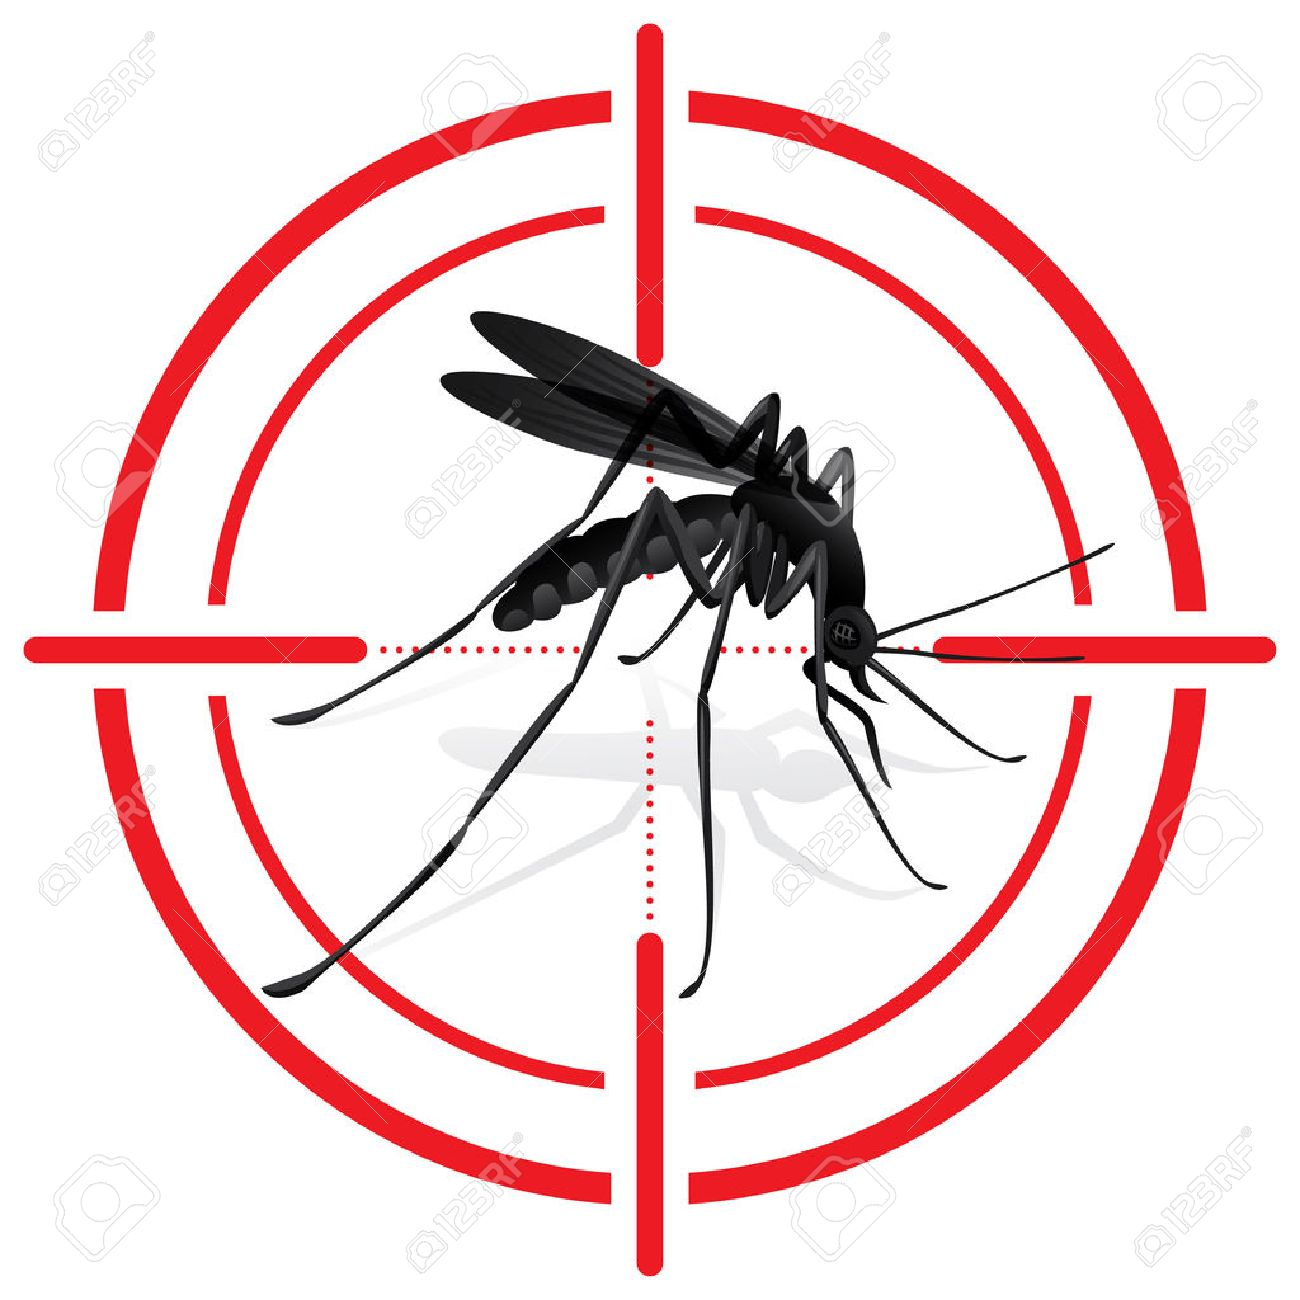 Signaling, mosquitoes with Mosquito target. sights signal. Ideal for informational and institutional sanitation and related care - 50040529